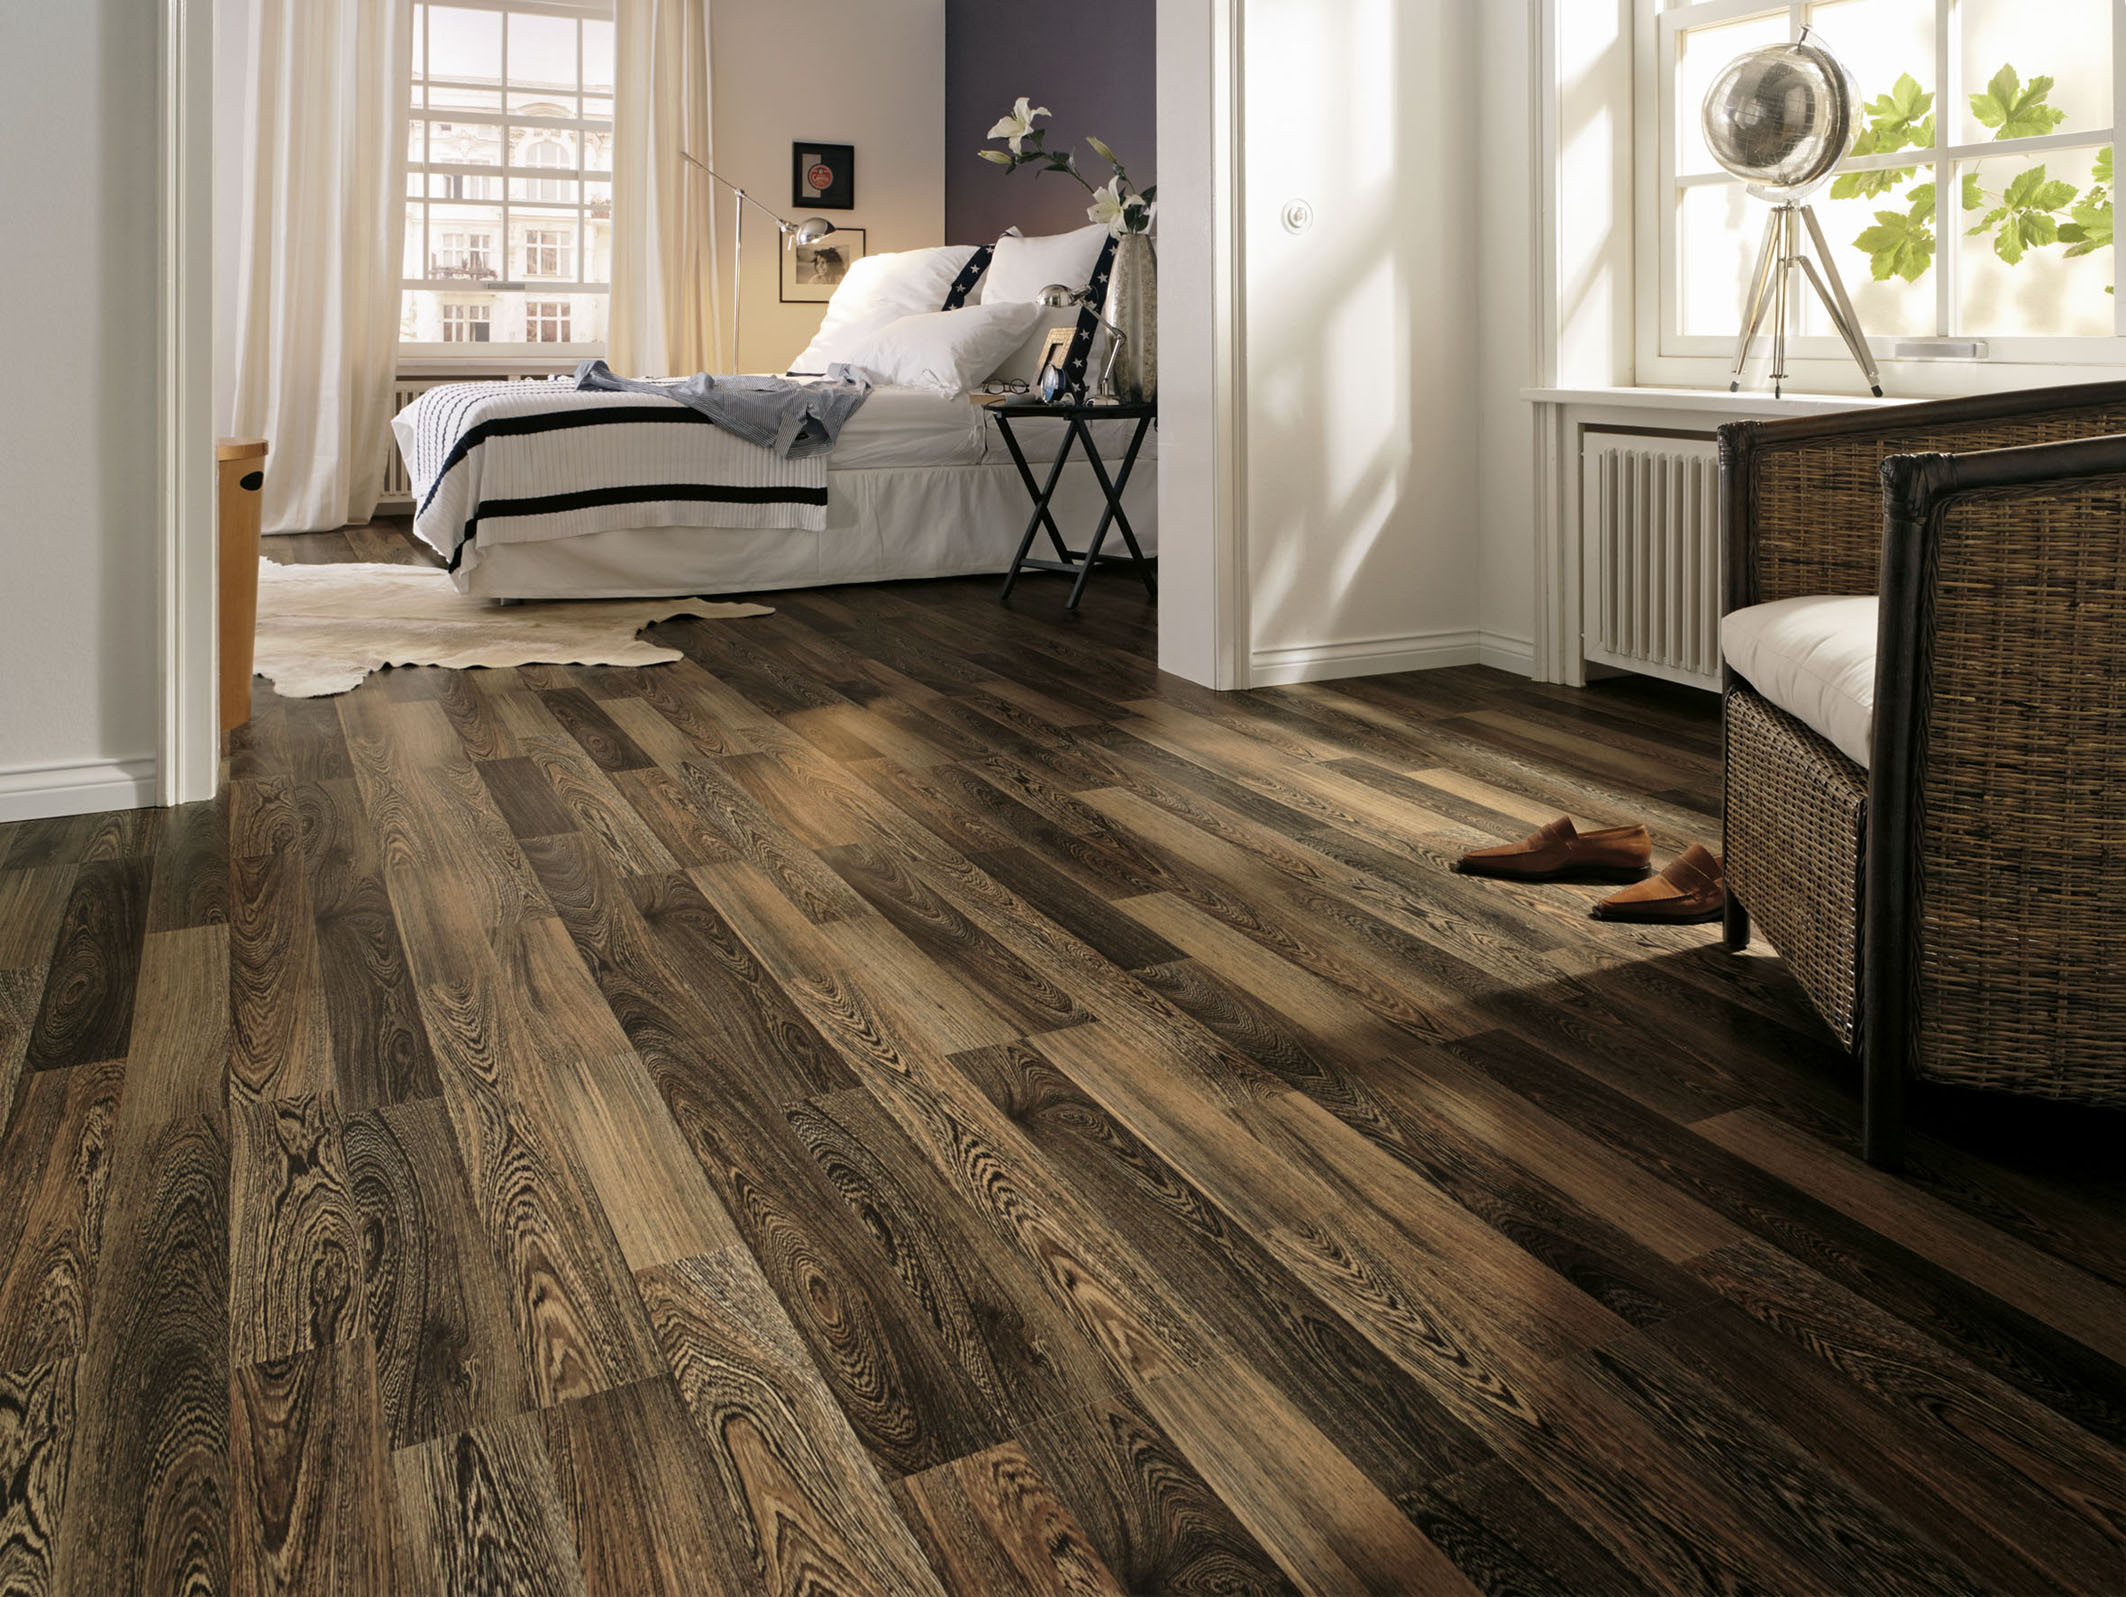 From Mona Lisa to Panga Panga Laminate flooring offers an impressive